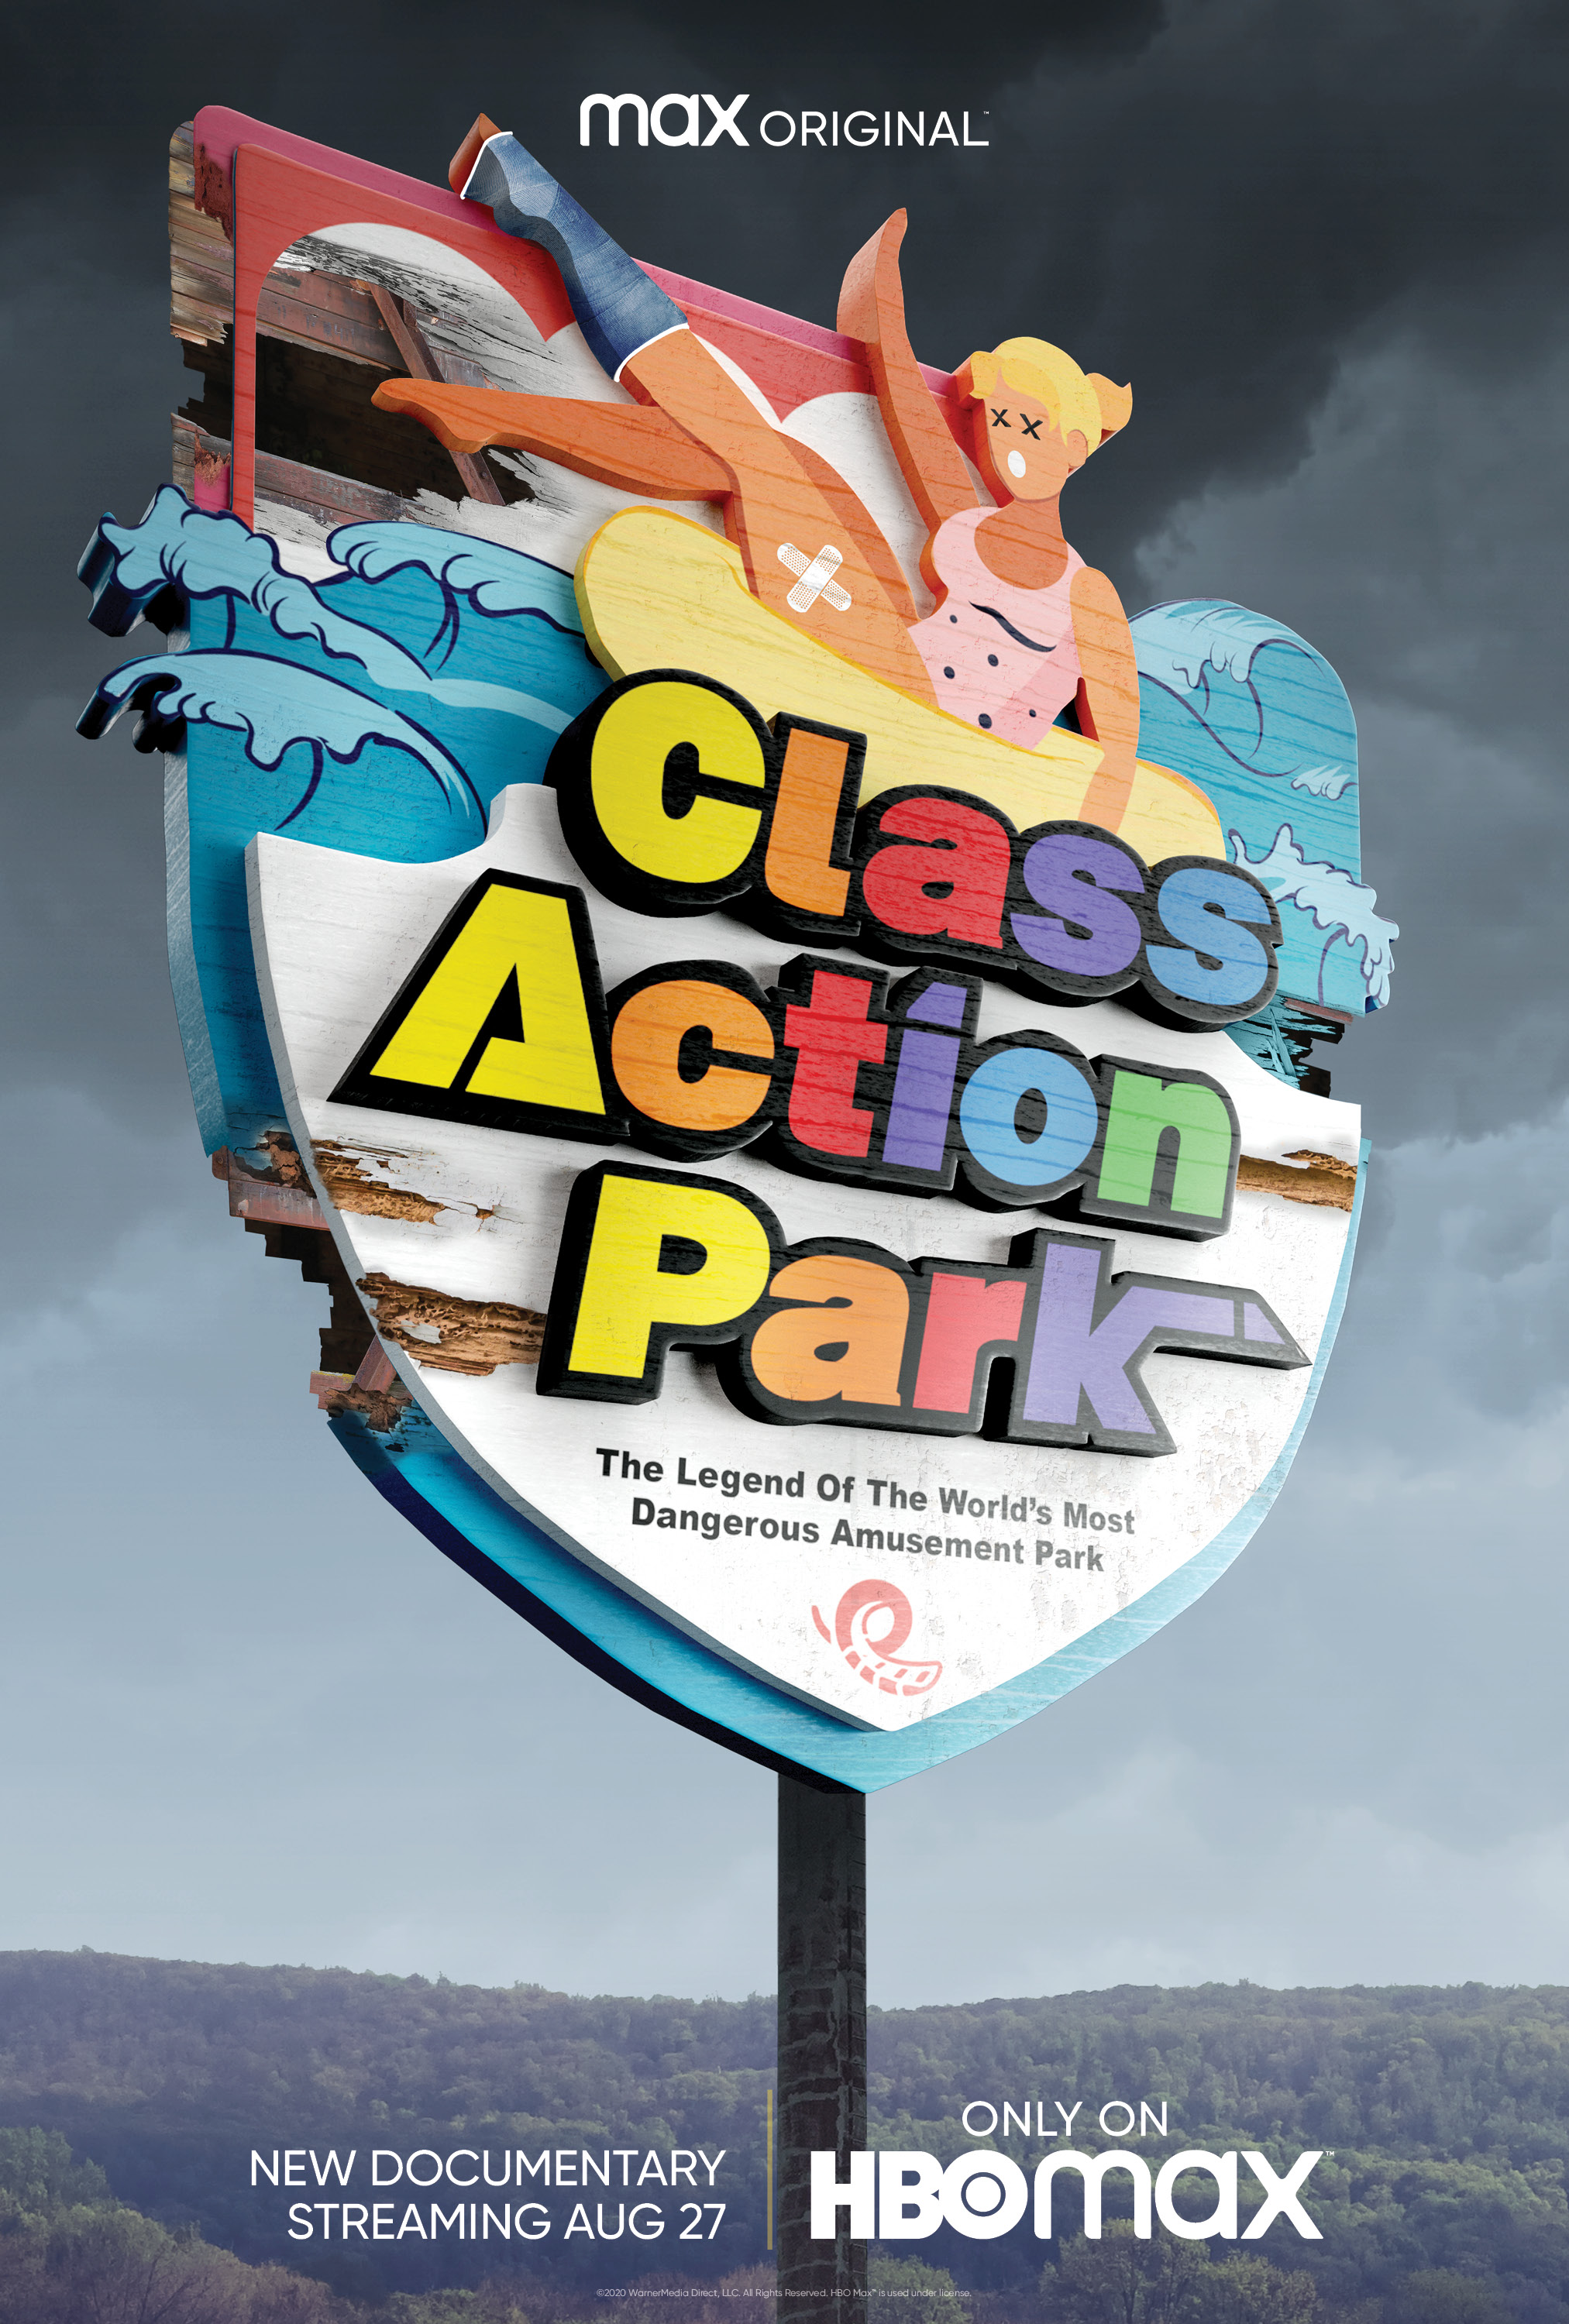 Class Action Park hd on soap2day